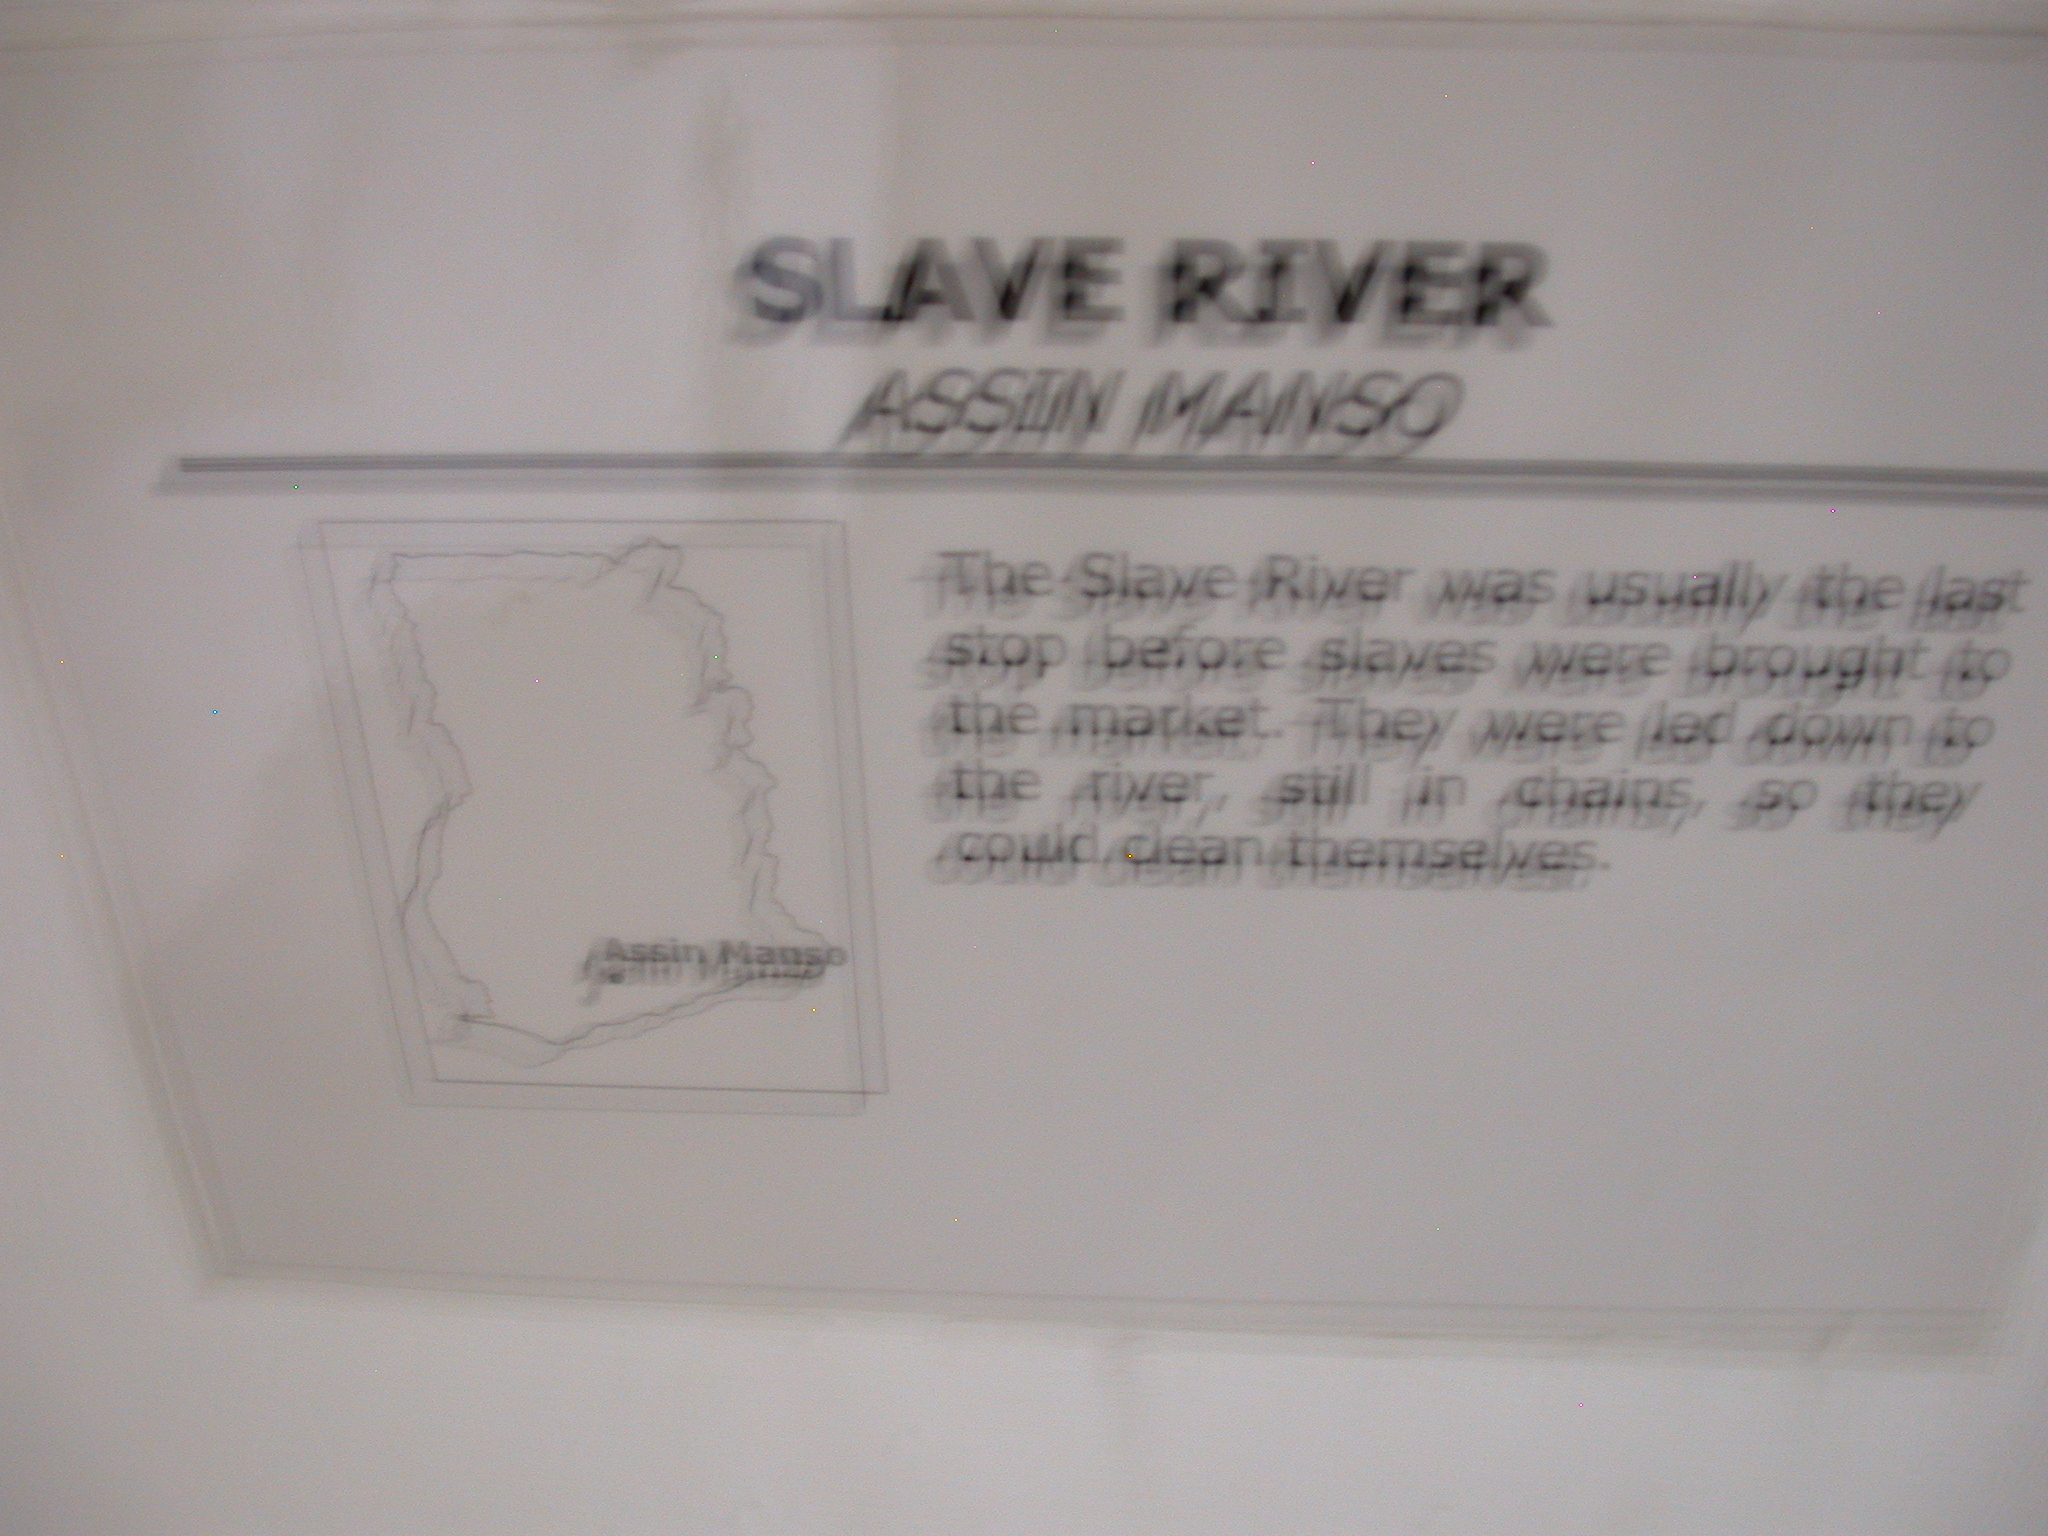 Blurry Label for Picture of Slave River, National Museum, Accra, Ghana